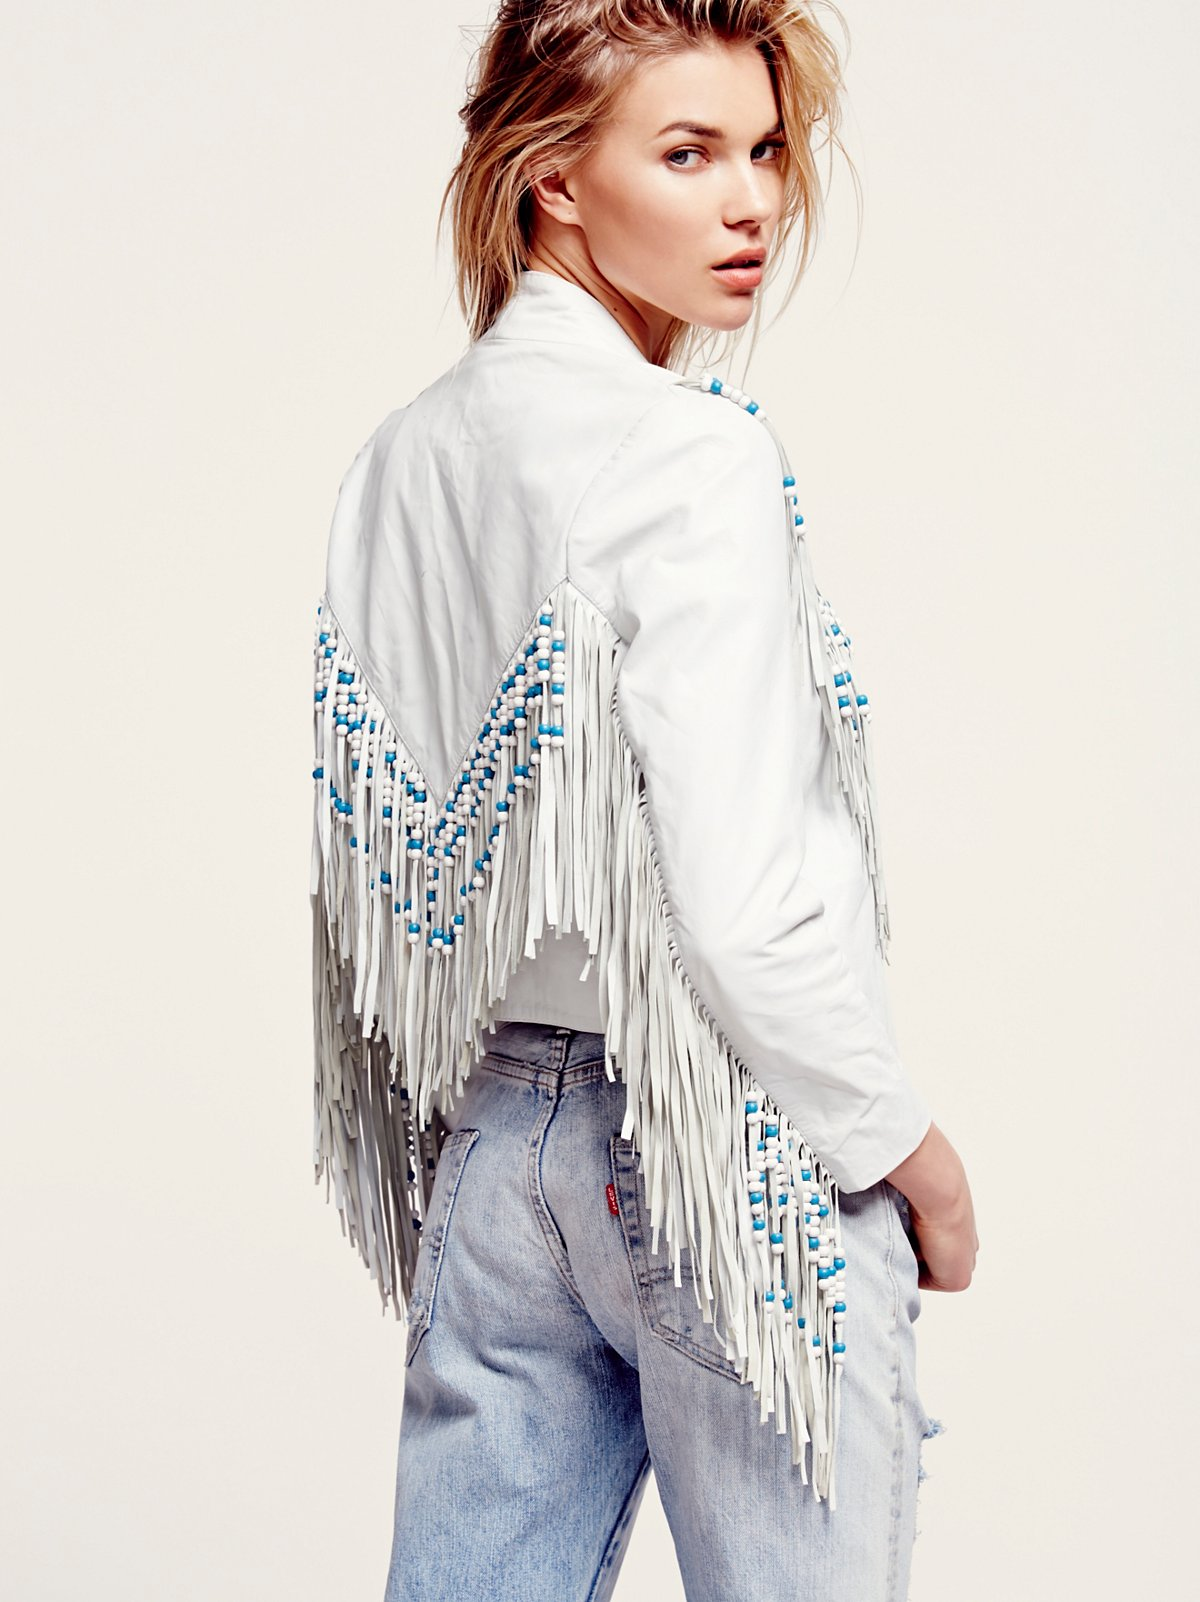 Hendrix Fringe Leather Jacket